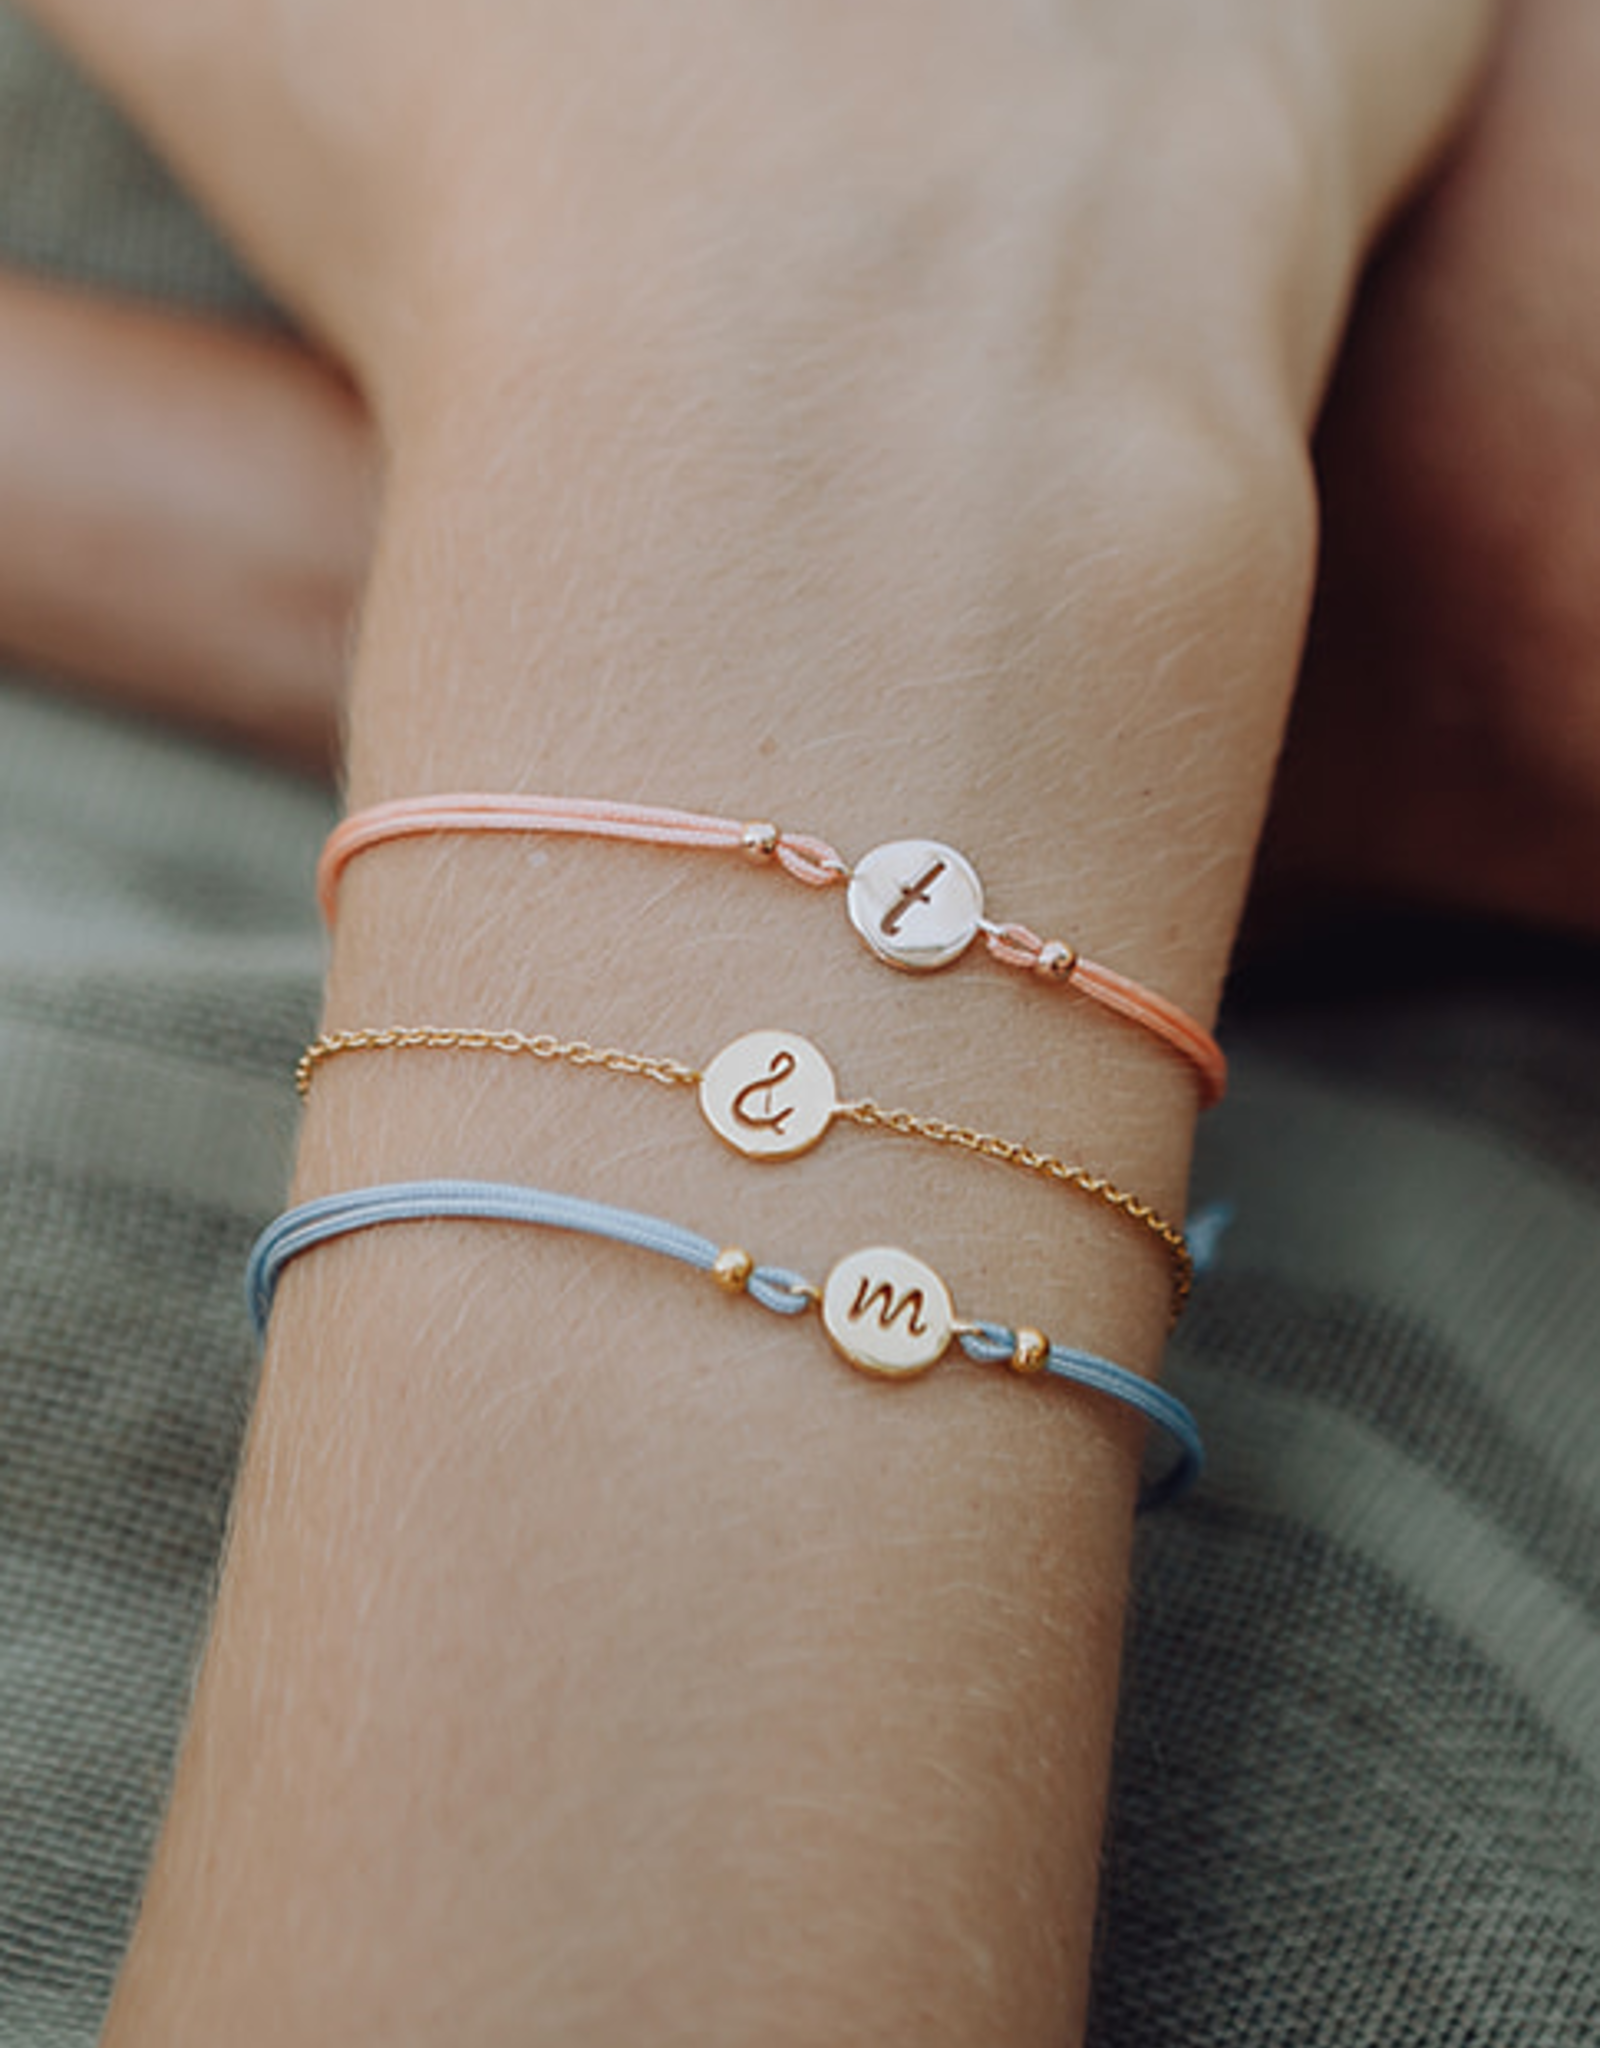 Design your bracelet with a charm